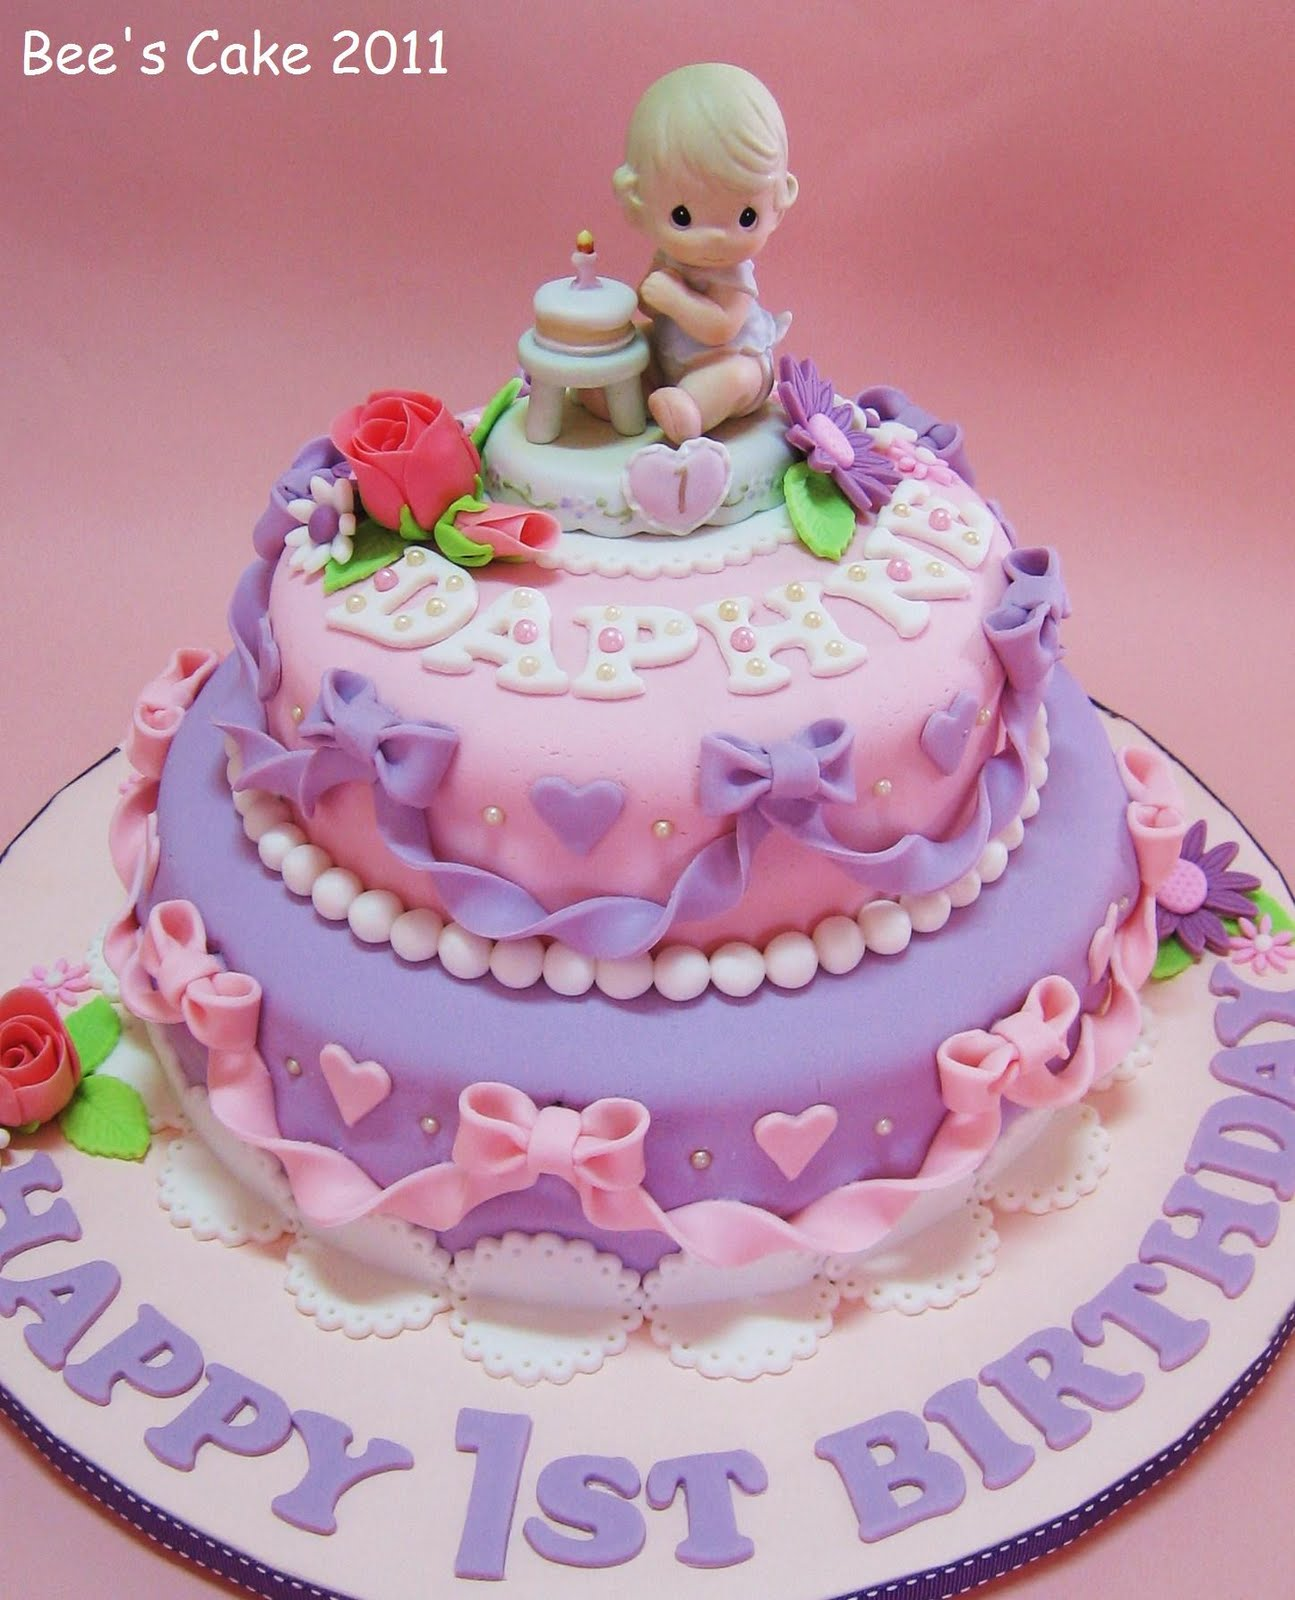 1000+ images about Birthday Cakes, girls on Pinterest